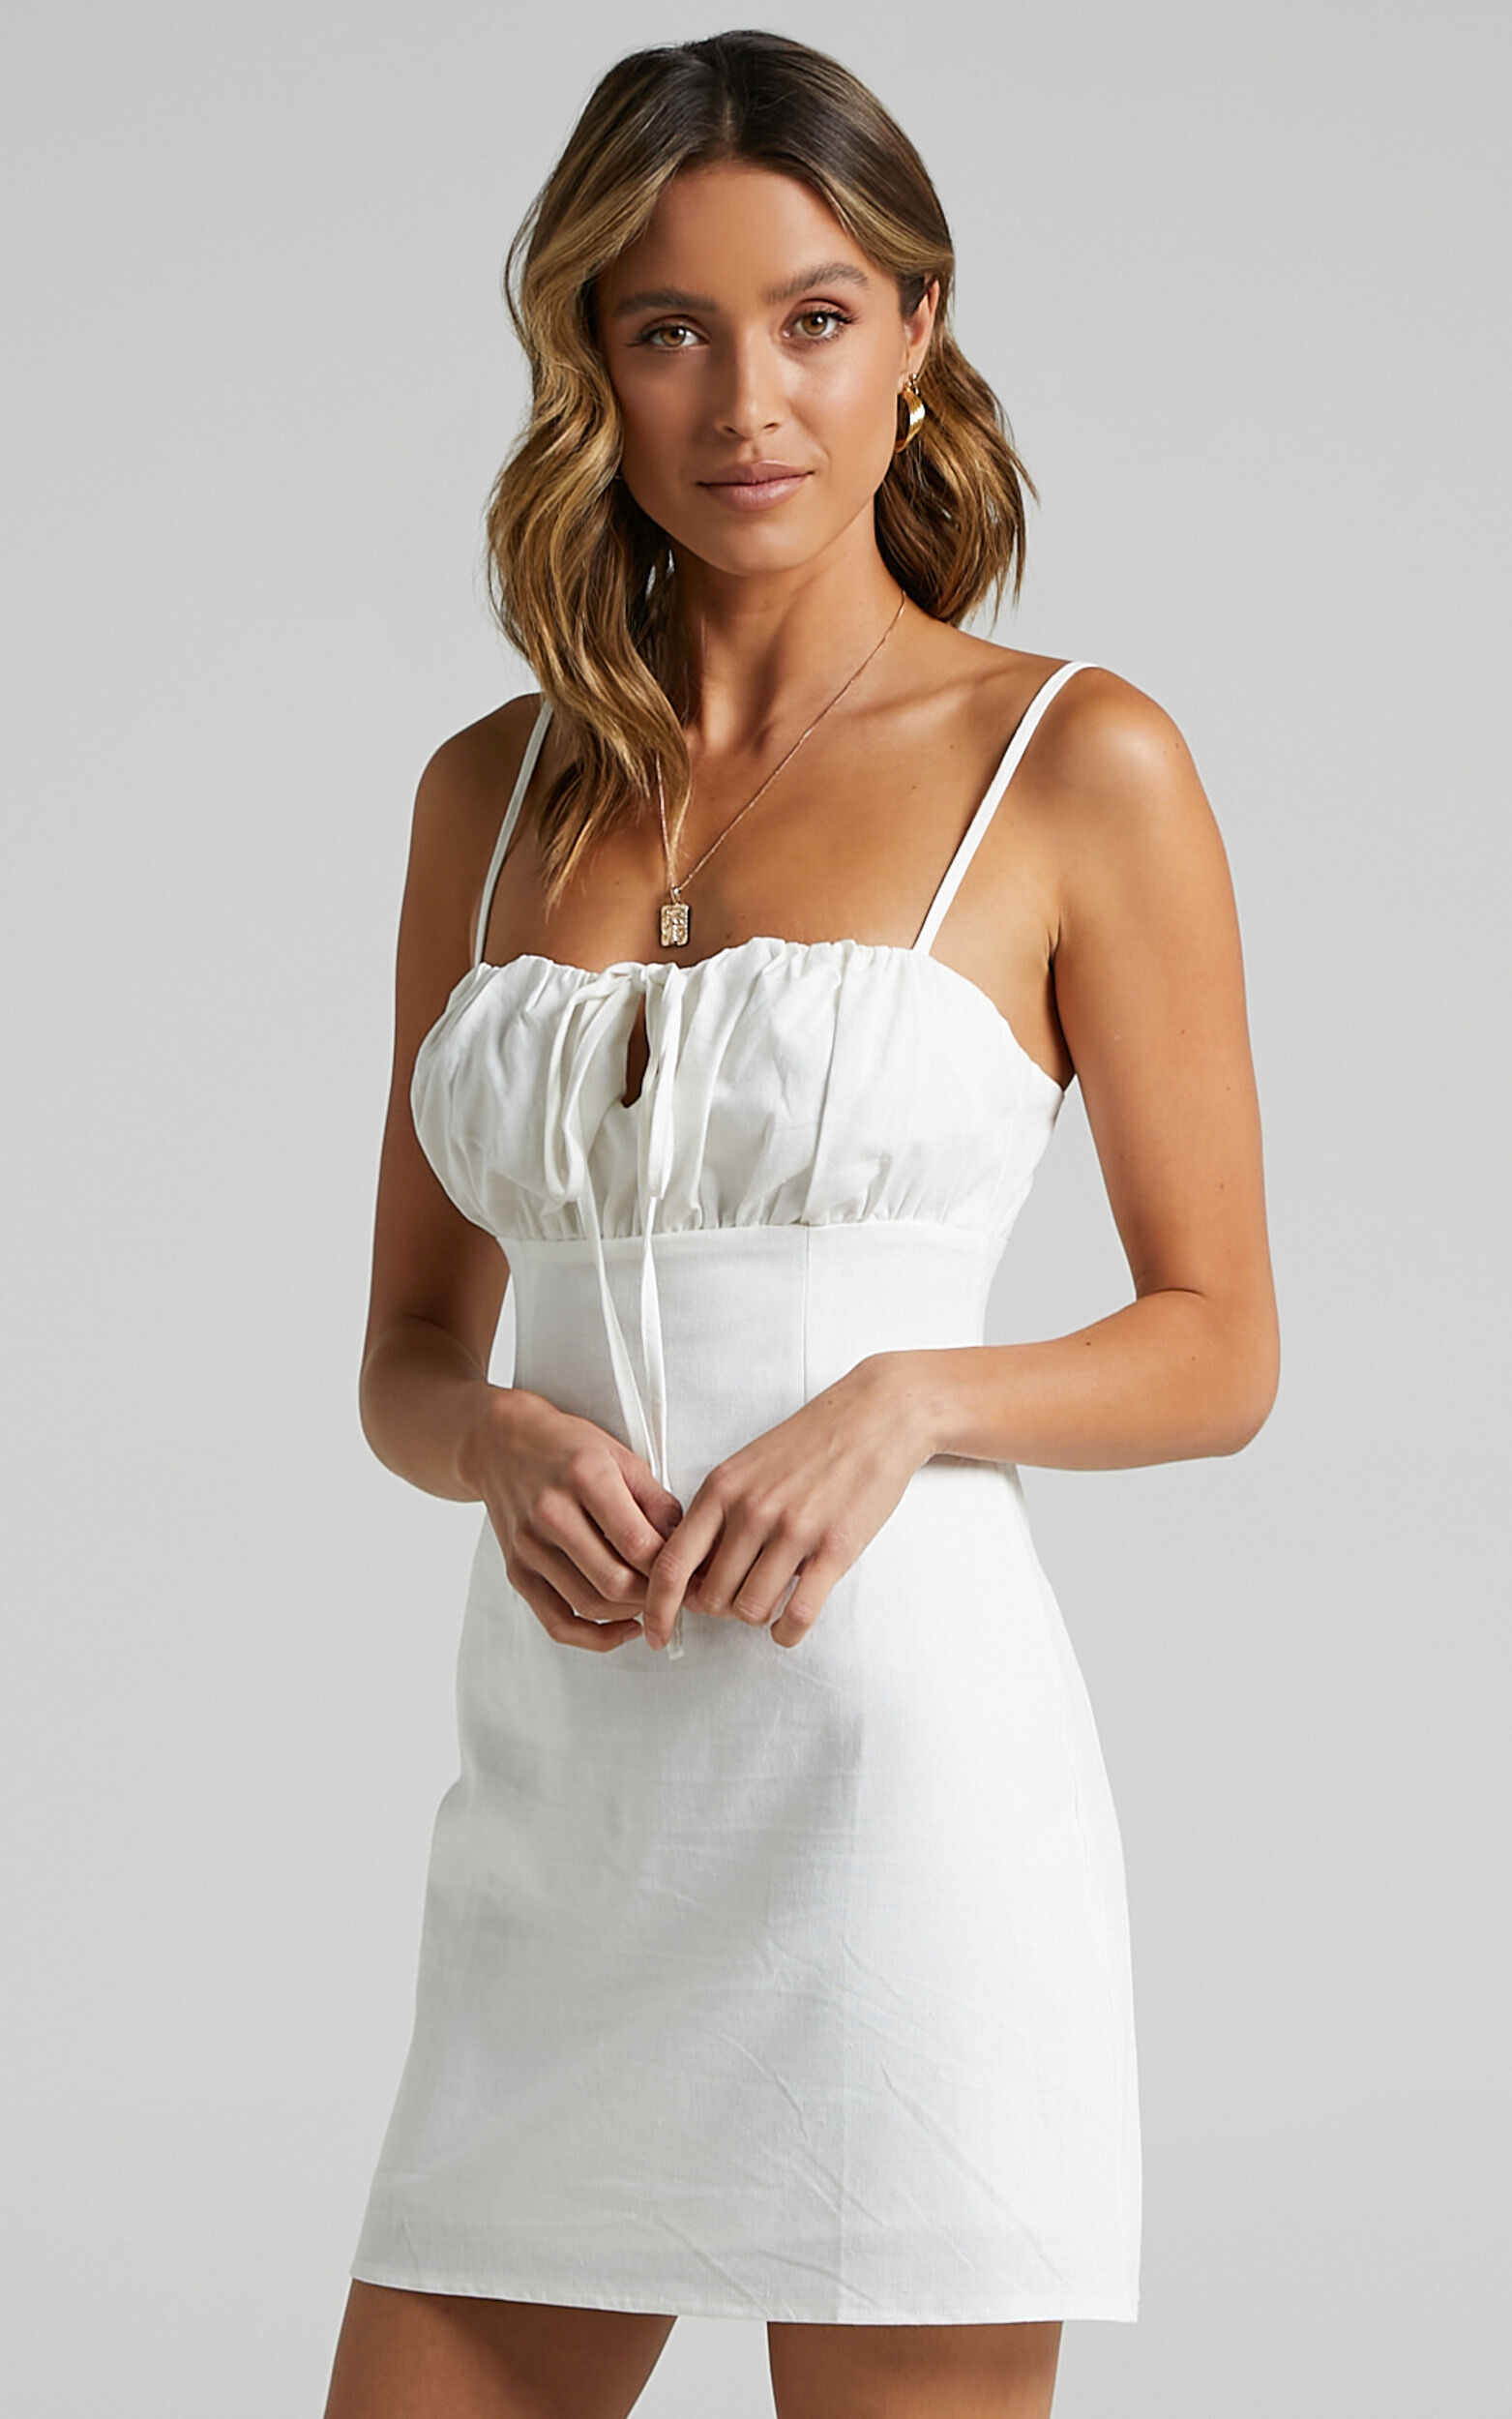 Break Free With Me Dress in White Linen Look - 20, WHT2, super-hi-res image number null